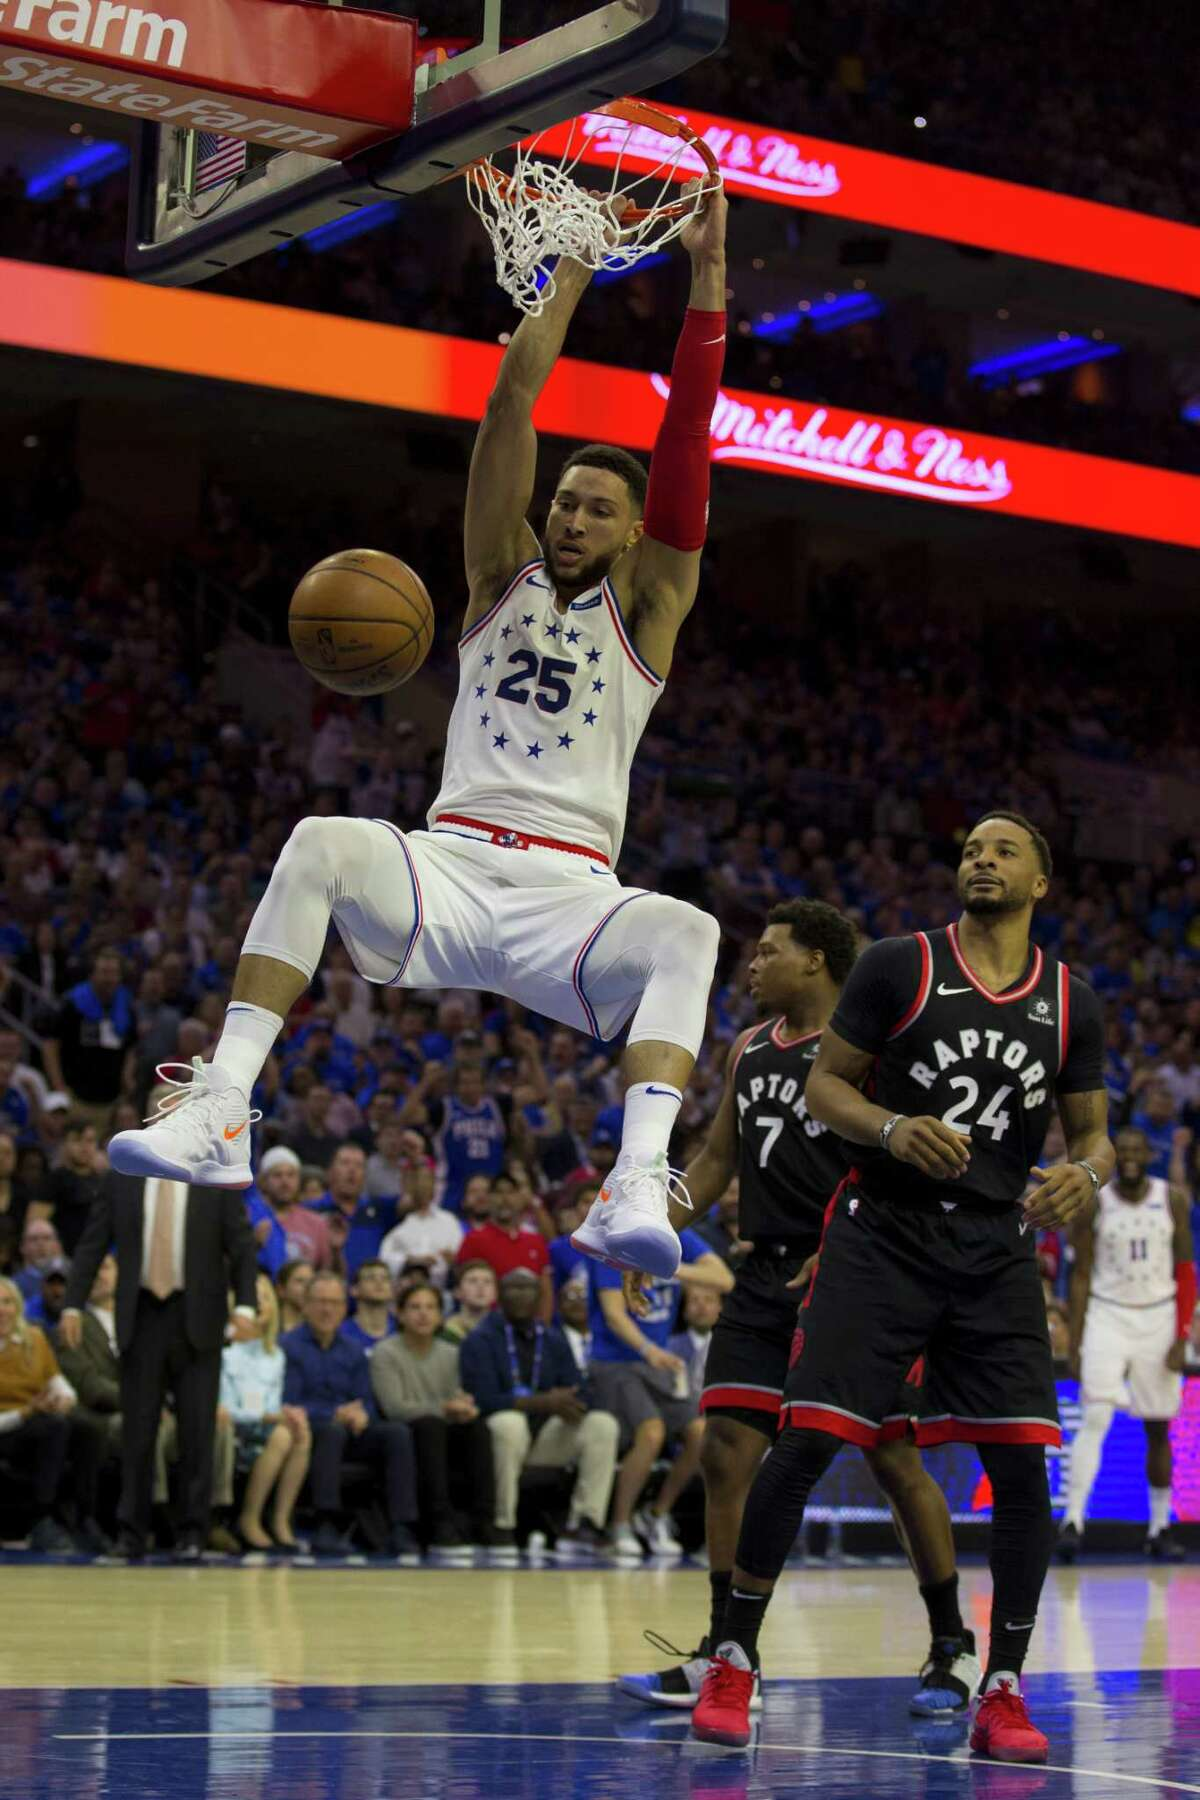 PHILADELPHIA, PA - MAY 02: Ben Simmons #25 of the Philadelphia 76ers dunks the ball past Norman Powell #24 of the Toronto Raptors in the second quarter of Game Three of the Eastern Conference Semifinals at the Wells Fargo Center on May 2, 2019 in Philadelphia, Pennsylvania. NOTE TO USER: User expressly acknowledges and agrees that, by downloading and or using this photograph, User is consenting to the terms and conditions of the Getty Images License Agreement. (Photo by Mitchell Leff/Getty Images)